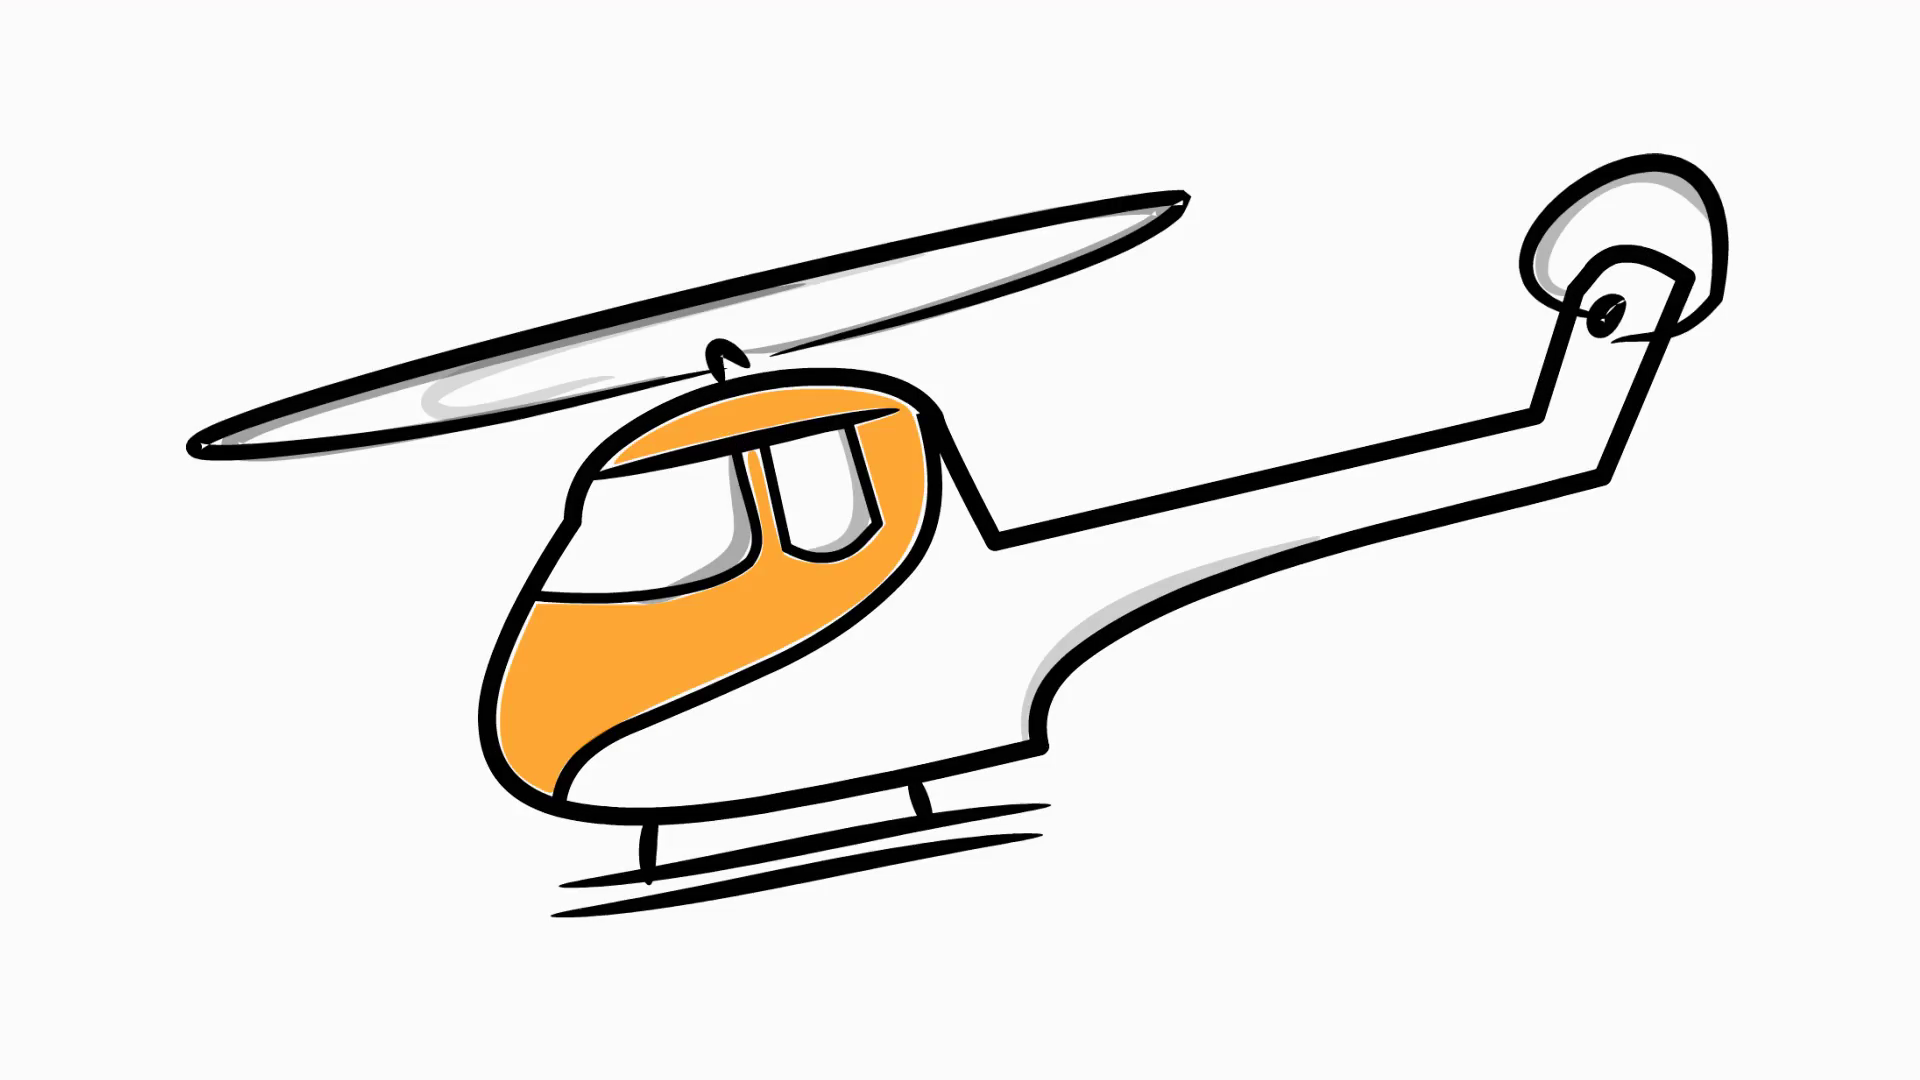 Drawn helicopter comic Helicopter illustration helicopter color hand